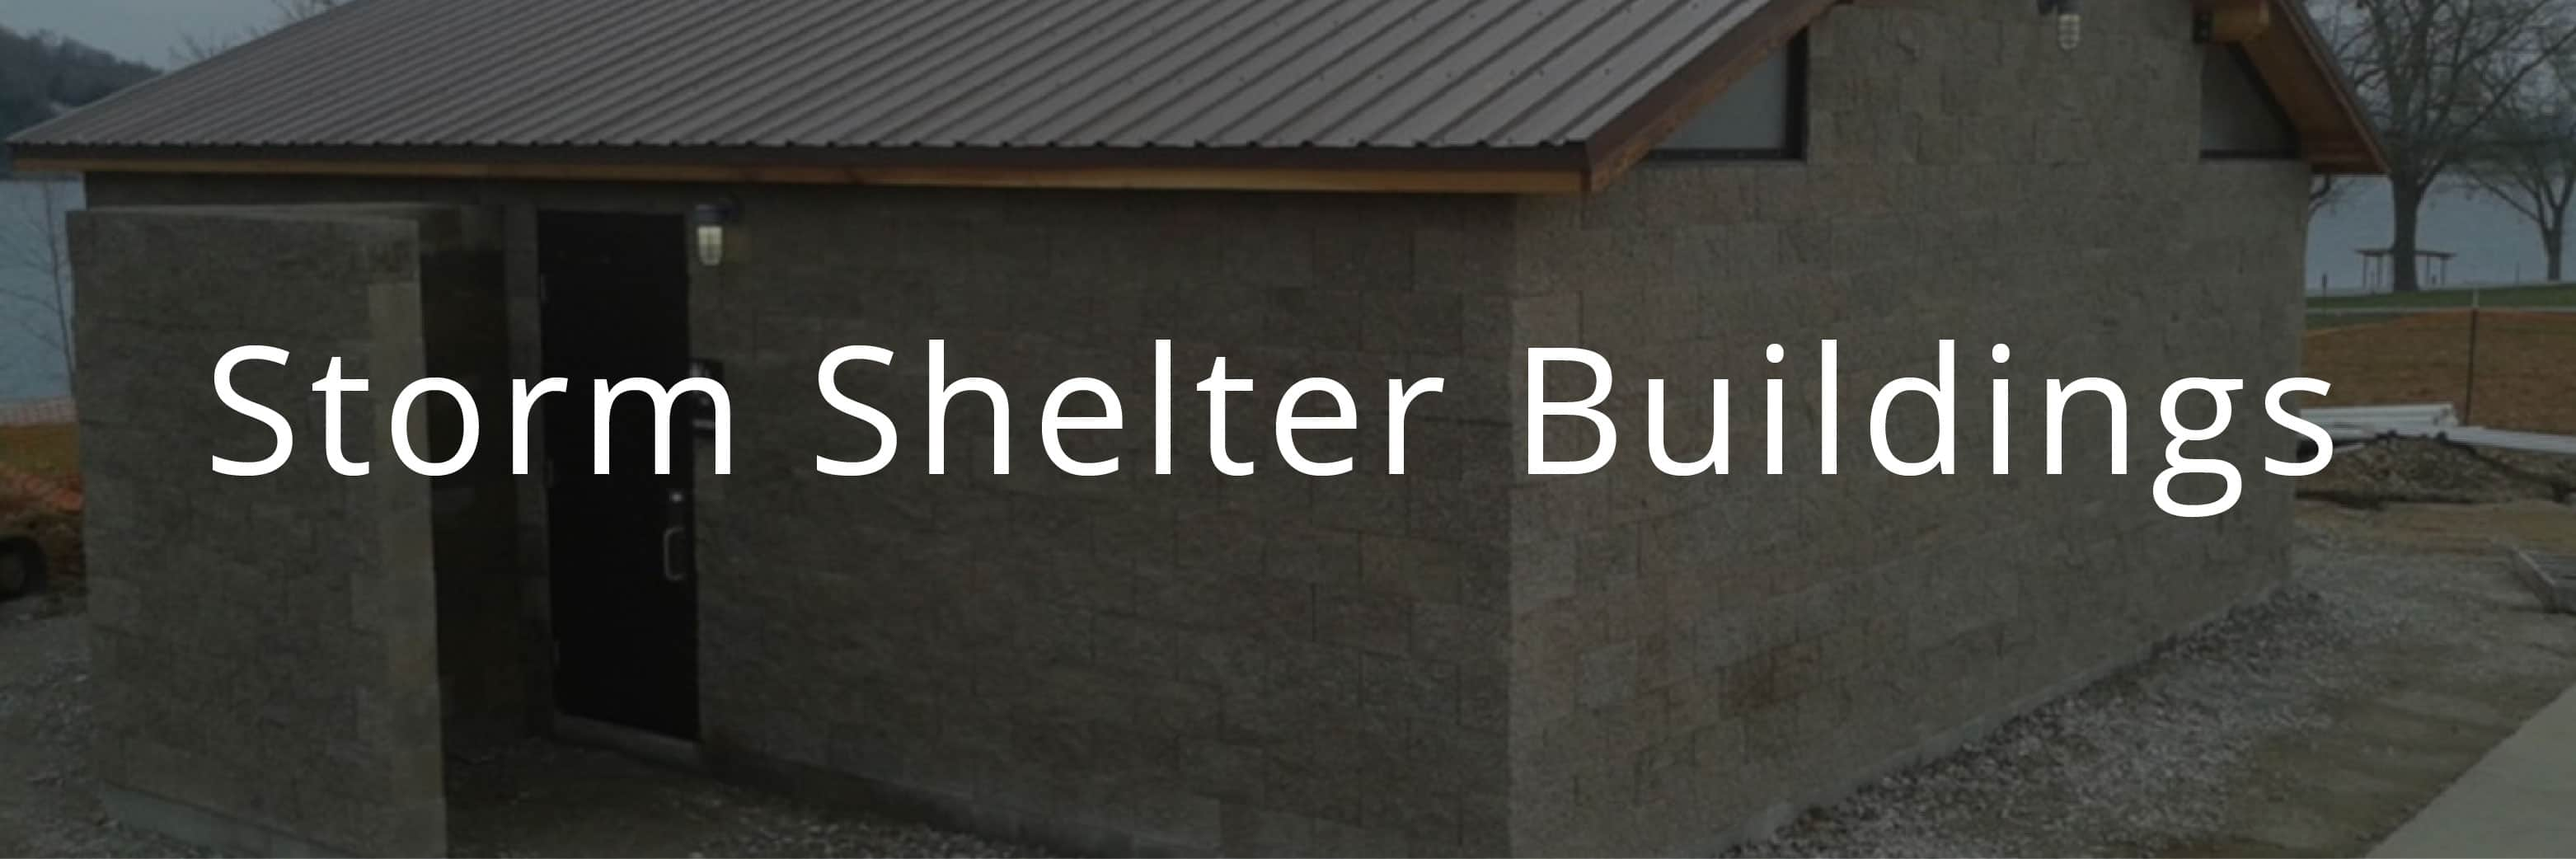 Durable Structures for Natural Disaster Situations